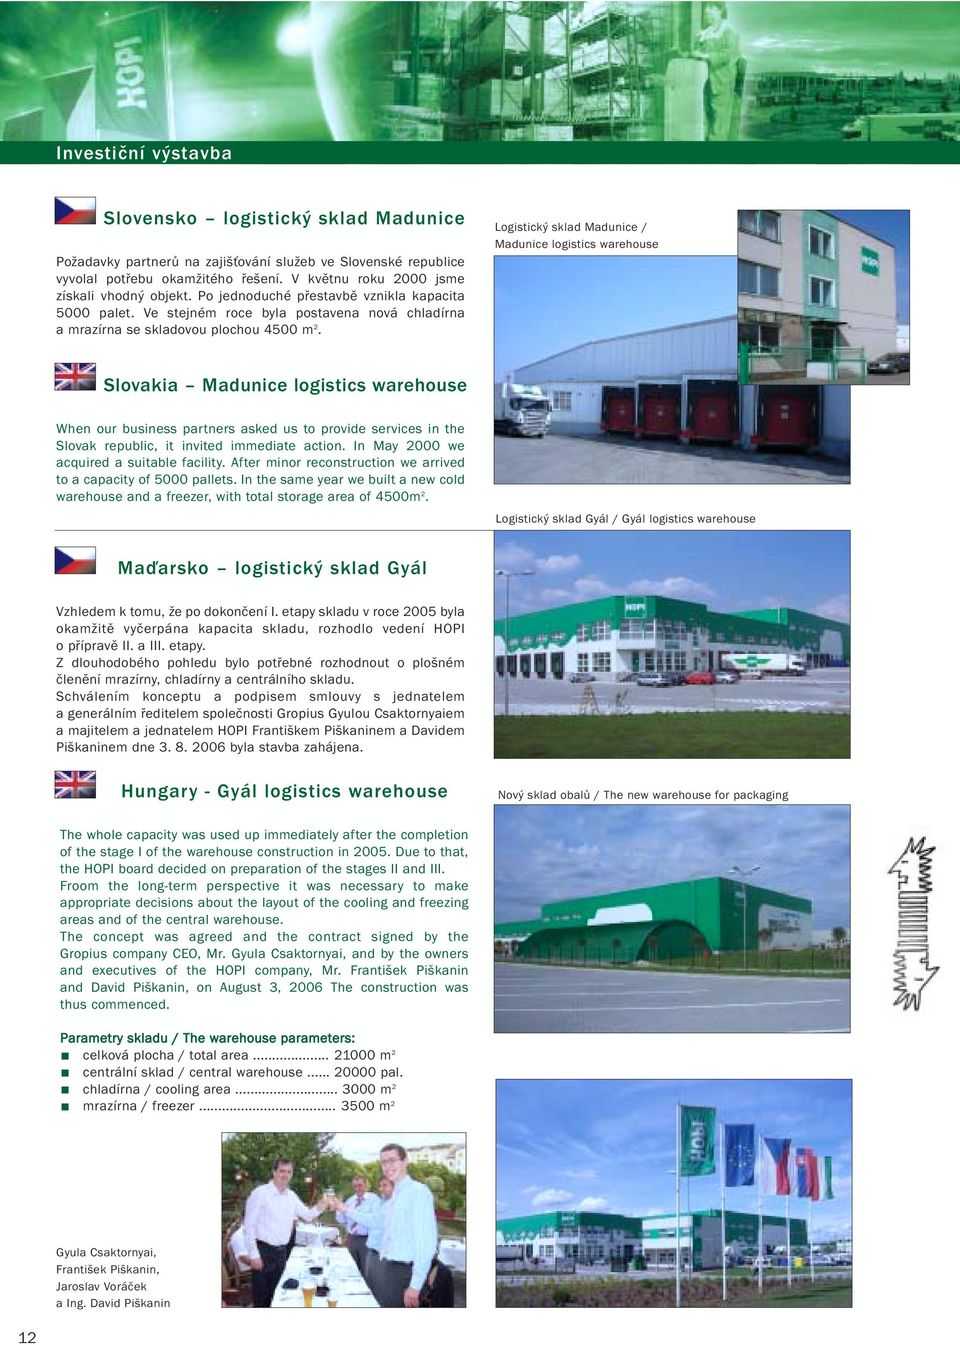 Logistický sklad Madunice / Madunice logistics warehouse Slovakia Madunice logistics warehouse When our business partners asked us to provide services in the Slovak republic, it invited immediate